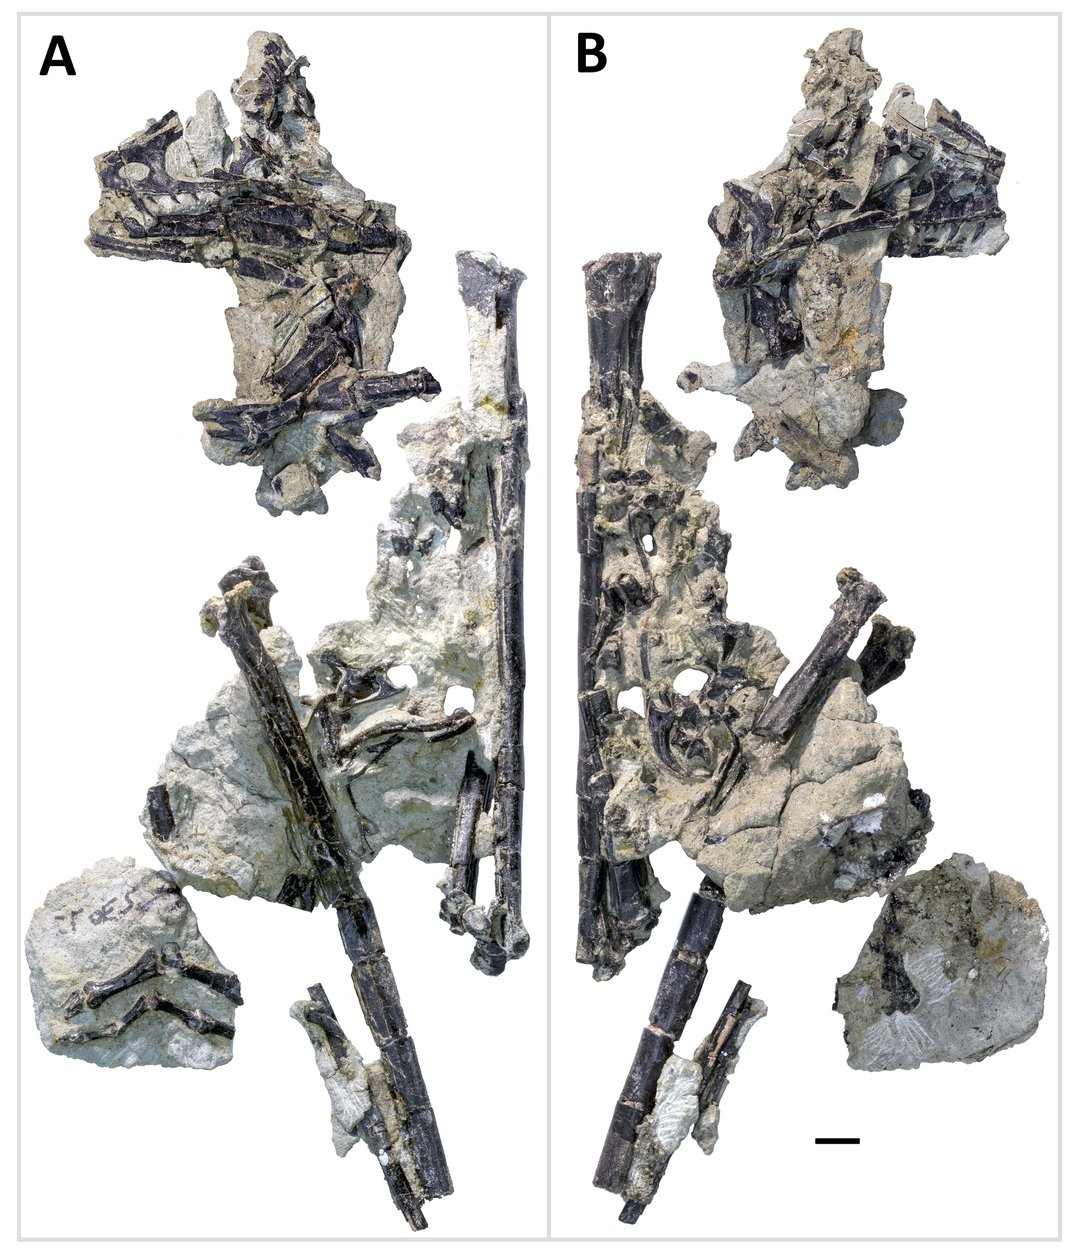 Discovery of Raptor-Like Dinosaur Adds a New Wrinkle to the Origin of Birds